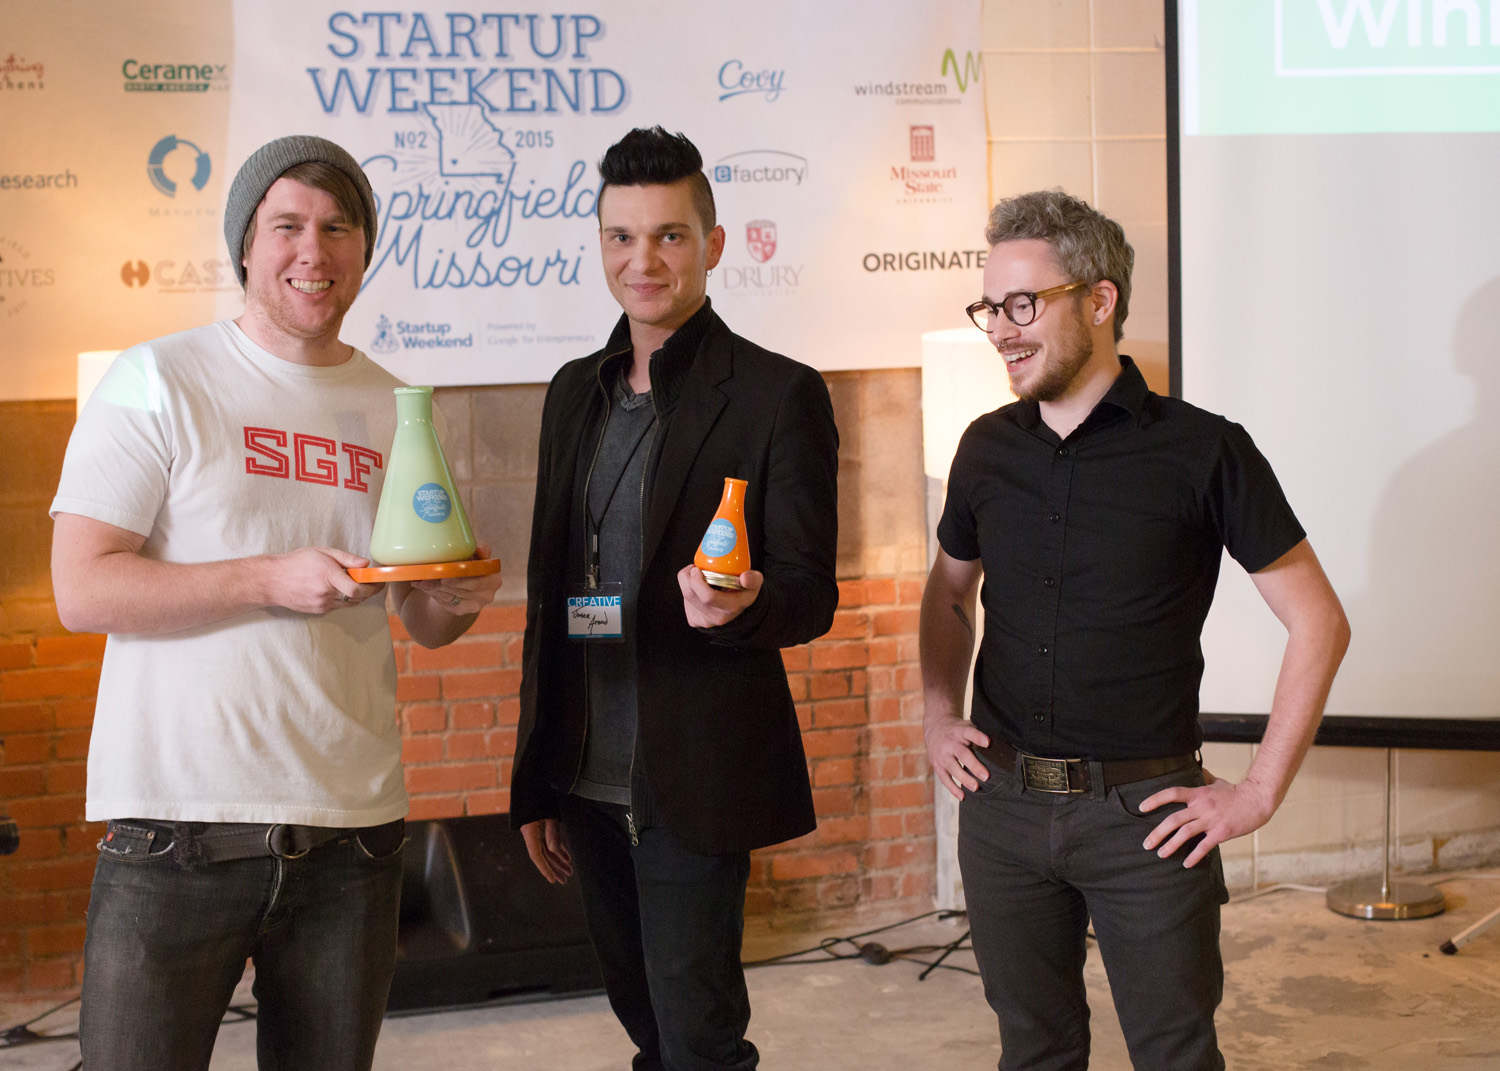 Myke Bates, Jason Arend and Brandon Cash, left to right, won first place in the Startup Weekend Springfield competition with their workplace communication software, Eagle Speak, at the eFactory in Springfield, Mo. on Nov. 20, 2015. The trio's startup, Eagle Speak, won the event. Photos by Brad Zweerink